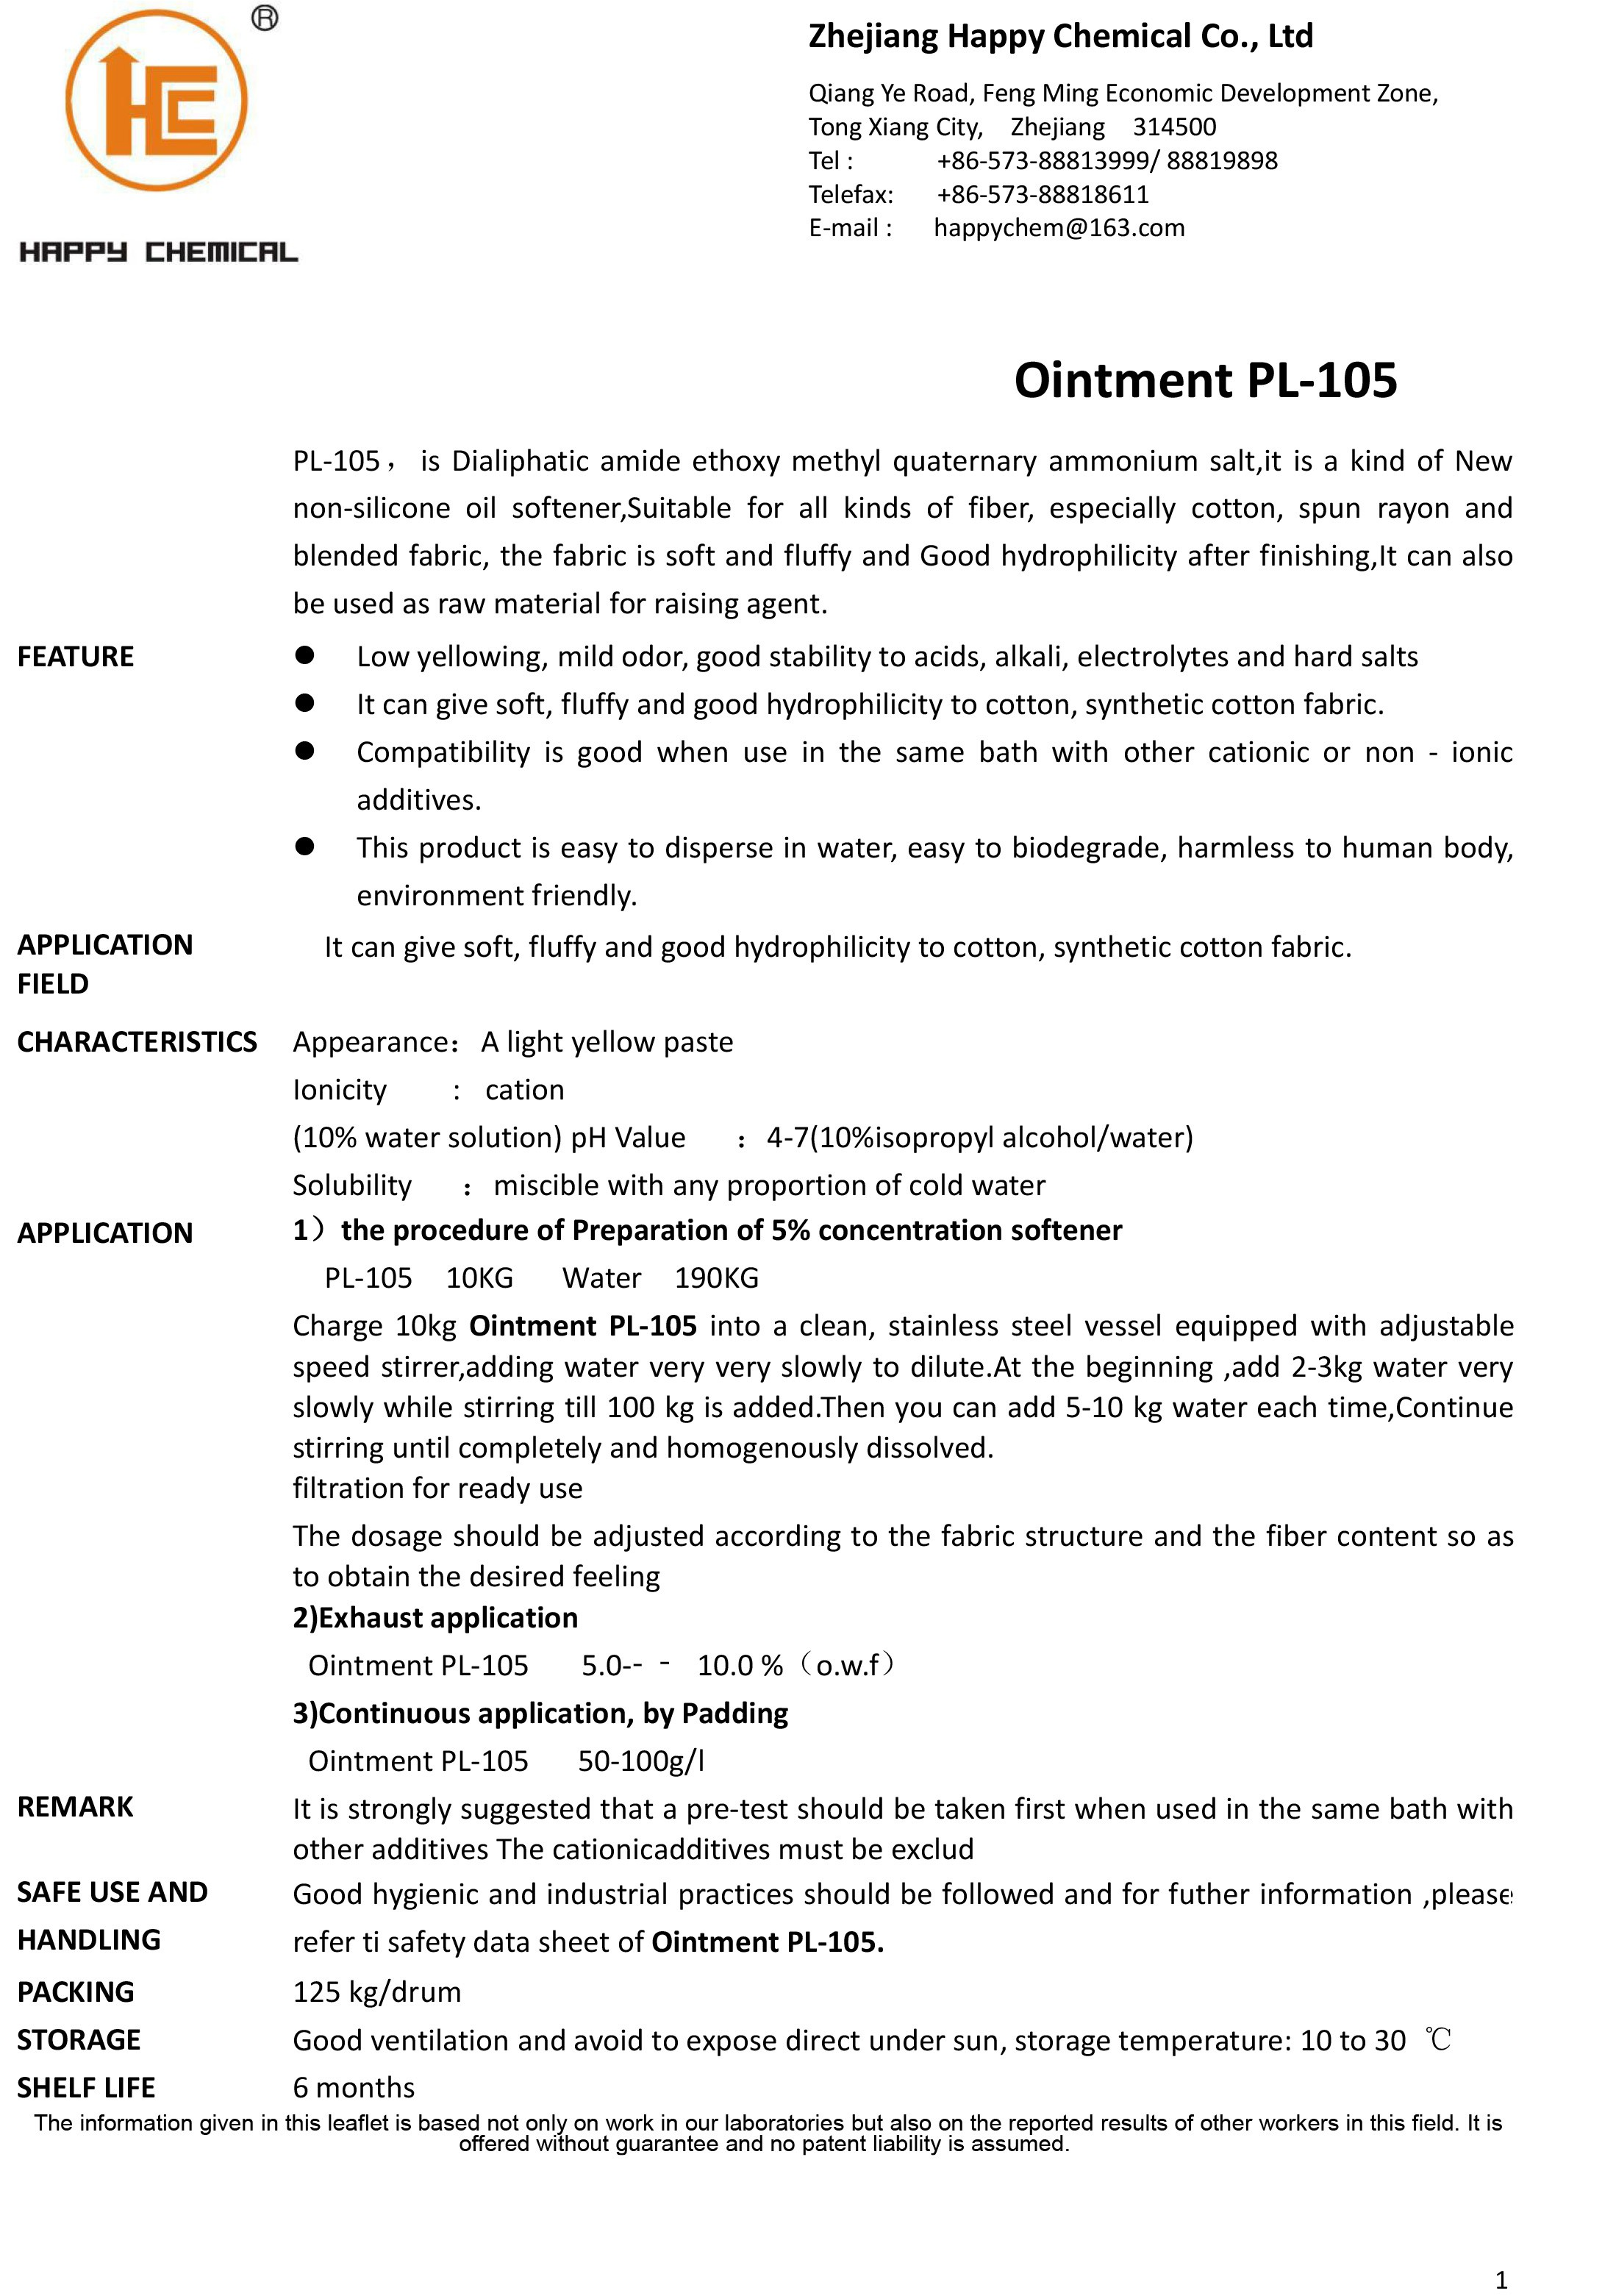 TDS Ointment PL-105English Version.jpg